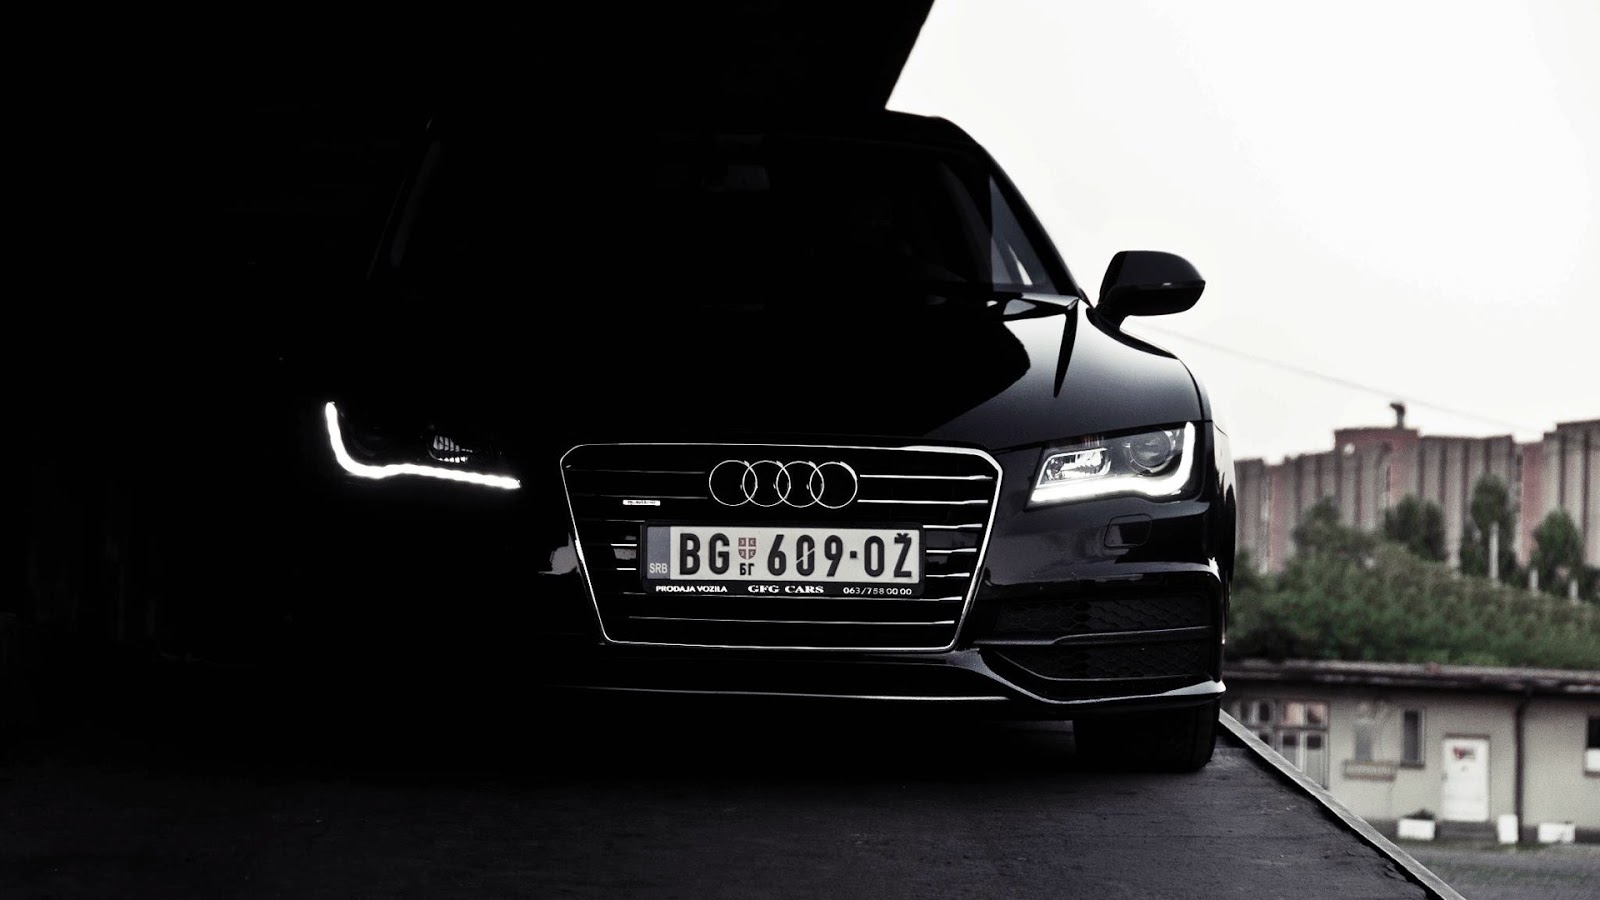 Audi Wallpaper Hd Wallpapersafari